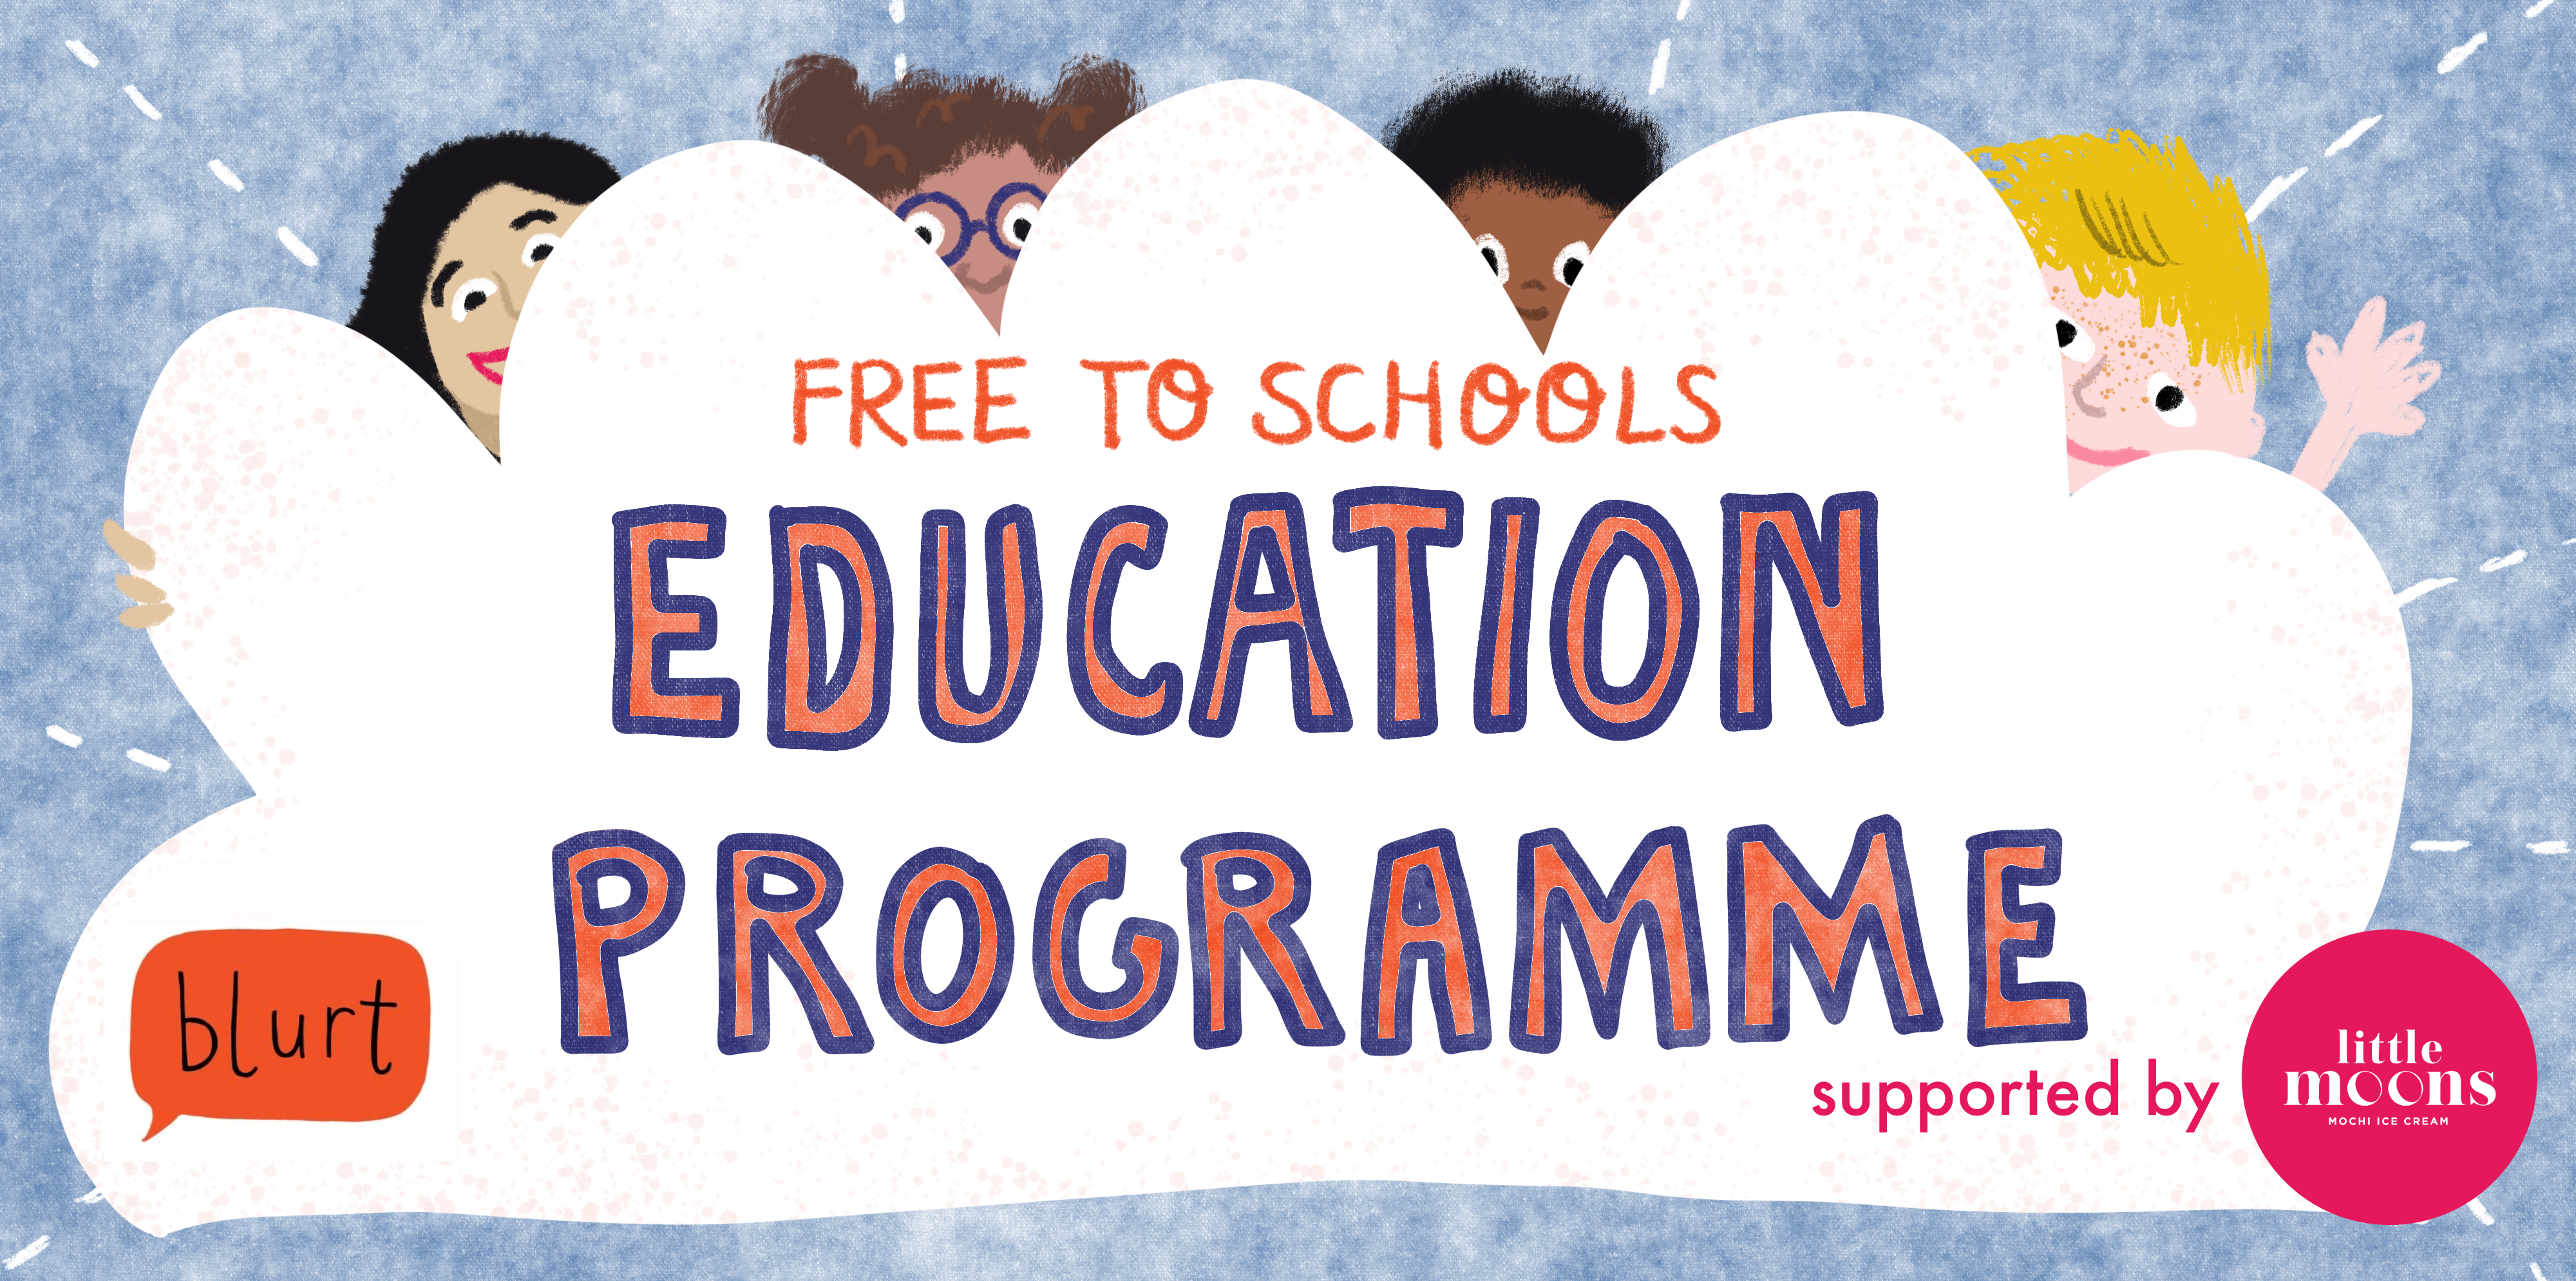 A white bubble in the middle of the page has the words 'free to schools education programme' - the Blurt logo is also in the bubble, as is 'supported by little moons' with the little moons logo. The background is light blue, and behind the white cloud are drawings of 4 young people - one with long black hair, a girl with glasses and bunches, one with short black hair, and one with short blonde hair.